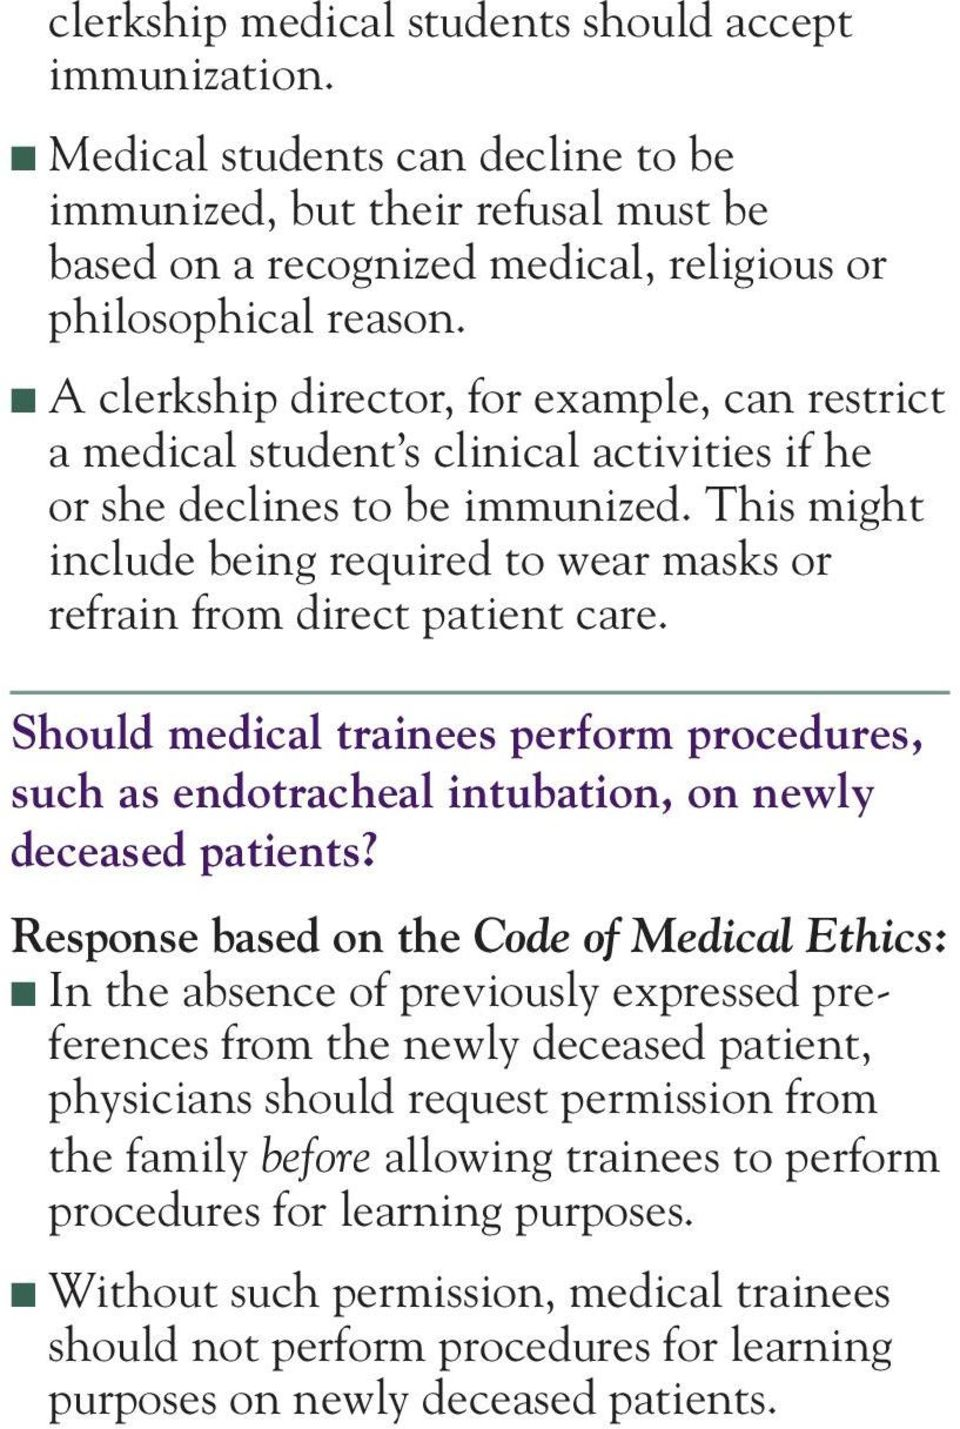 This might include being required to wear masks or refrain from direct patient care. Should medical trainees perform procedures, such as endotracheal intubation, on newly deceased patients?